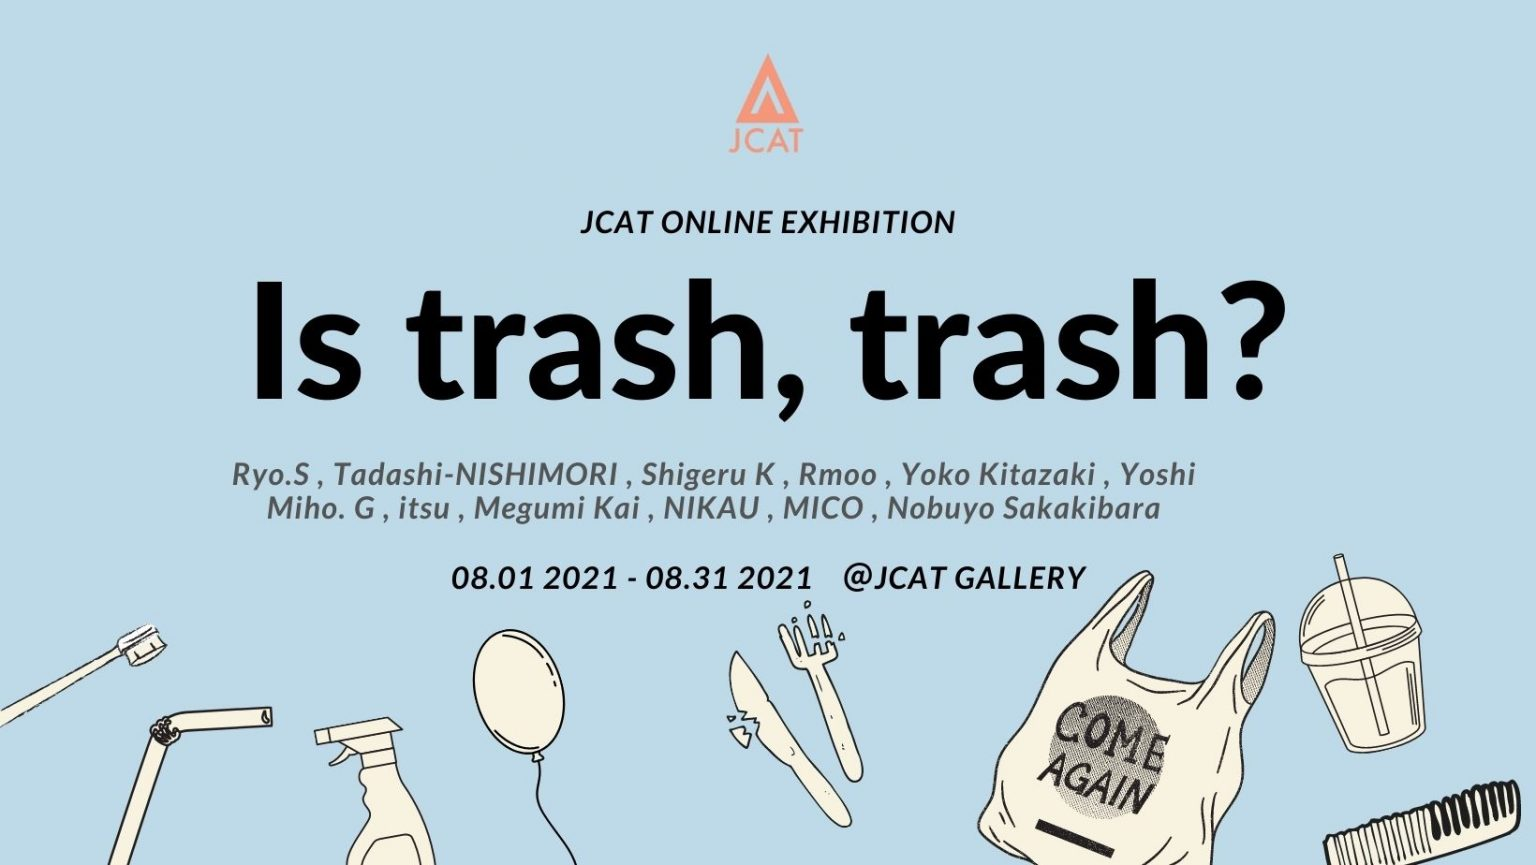 JCAT Gallery New York NY Online Art Store Japanese Art Shop Best Exhibition Art for sale by artists Is trash, trash? Exhibition